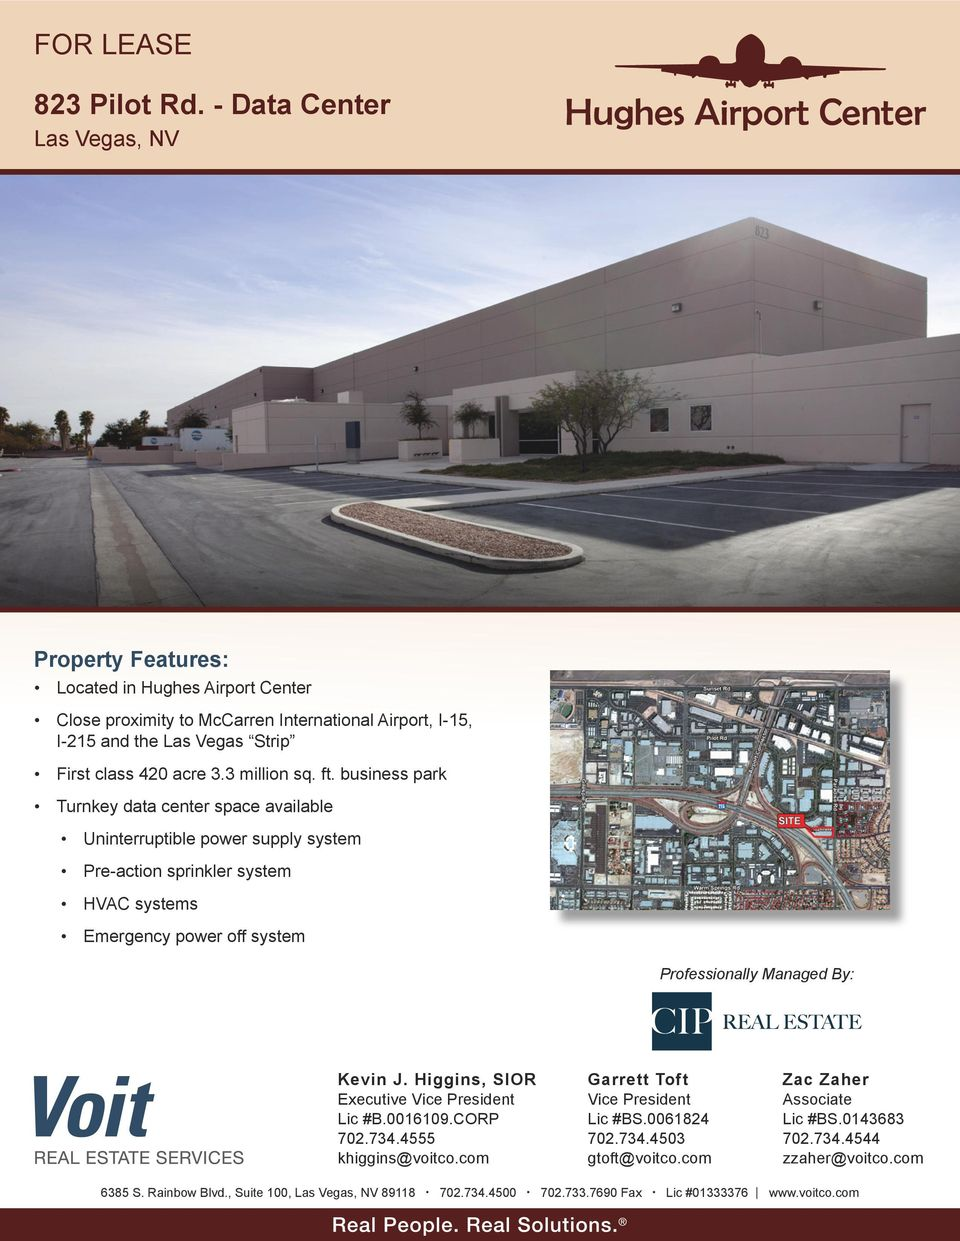 business park Turnkey data center space available Uninterruptible power supply system Pre-action sprinkler system